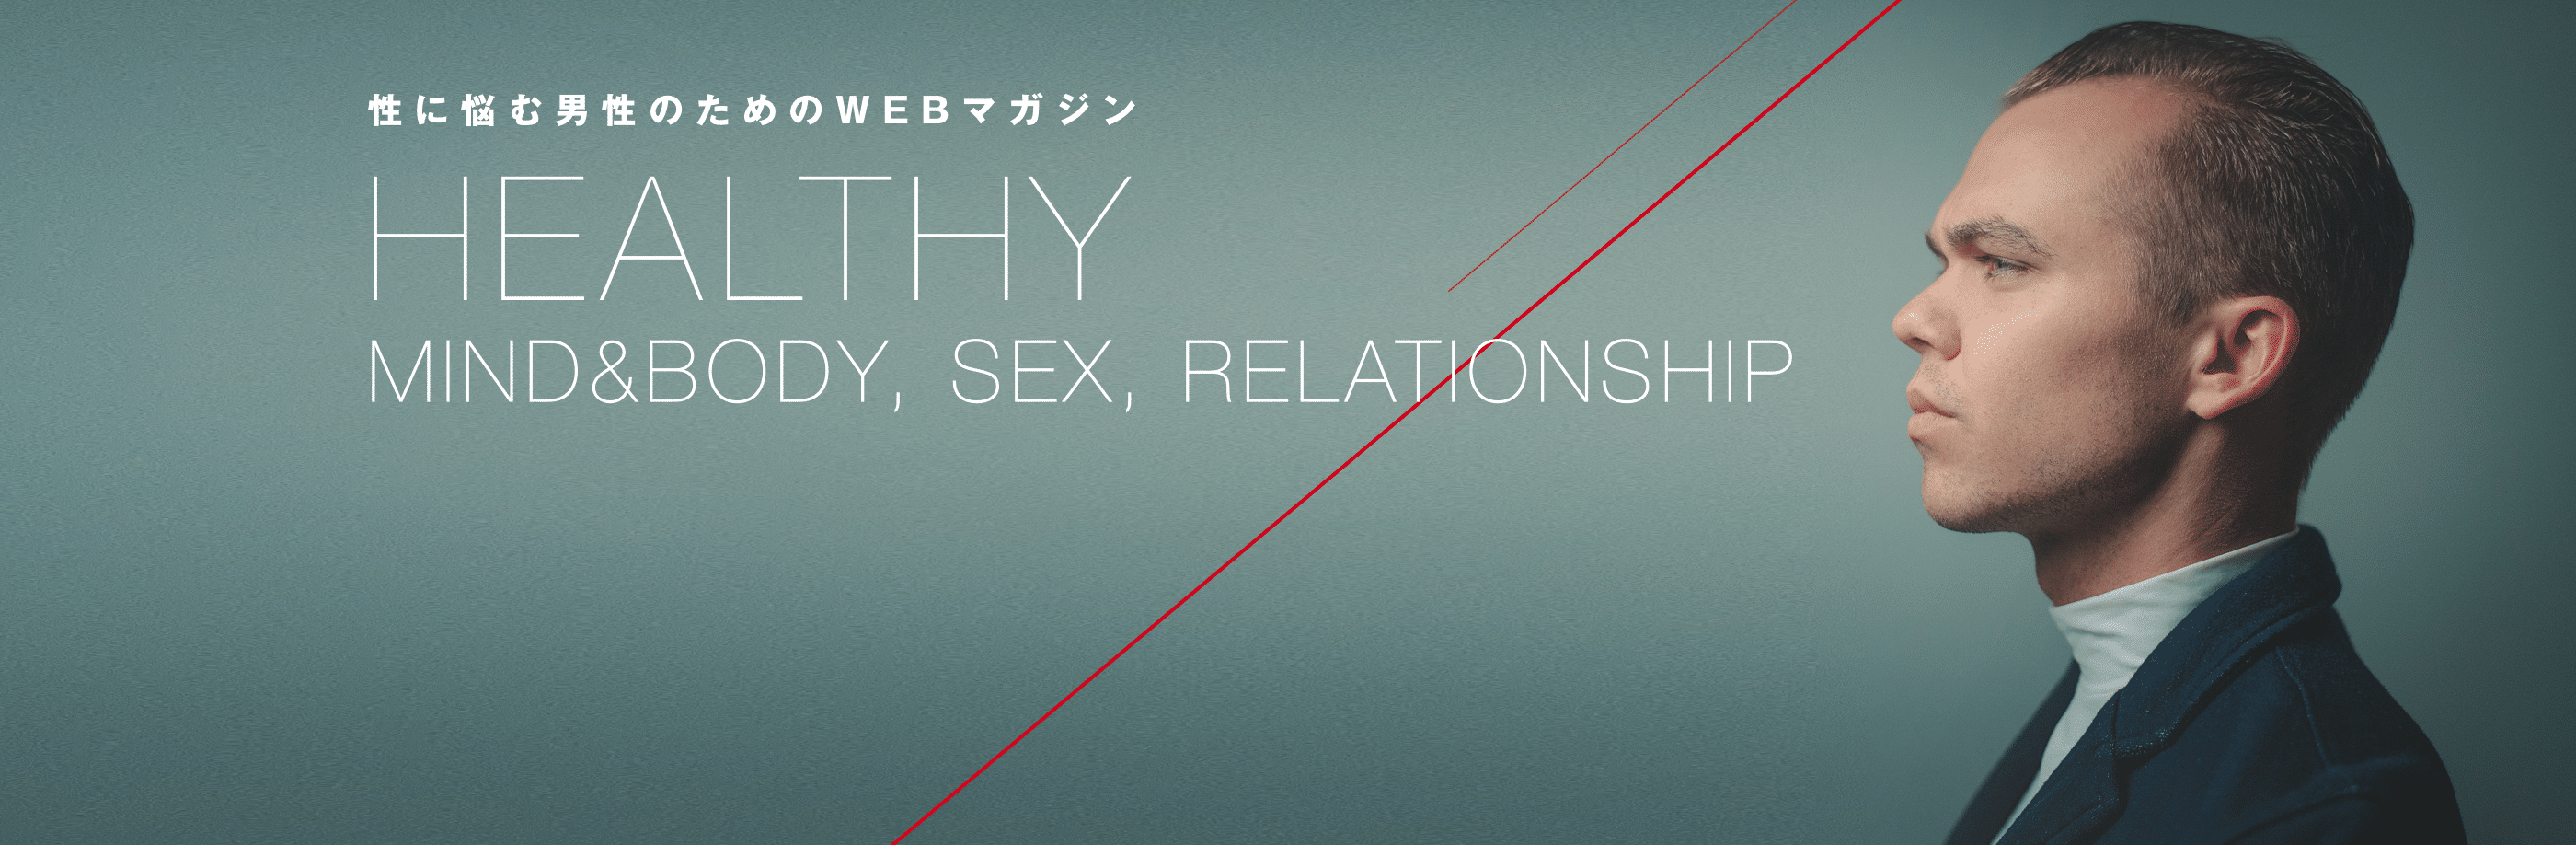 HEALTHY MIND & BODY,SEX,RELATIONSHIP